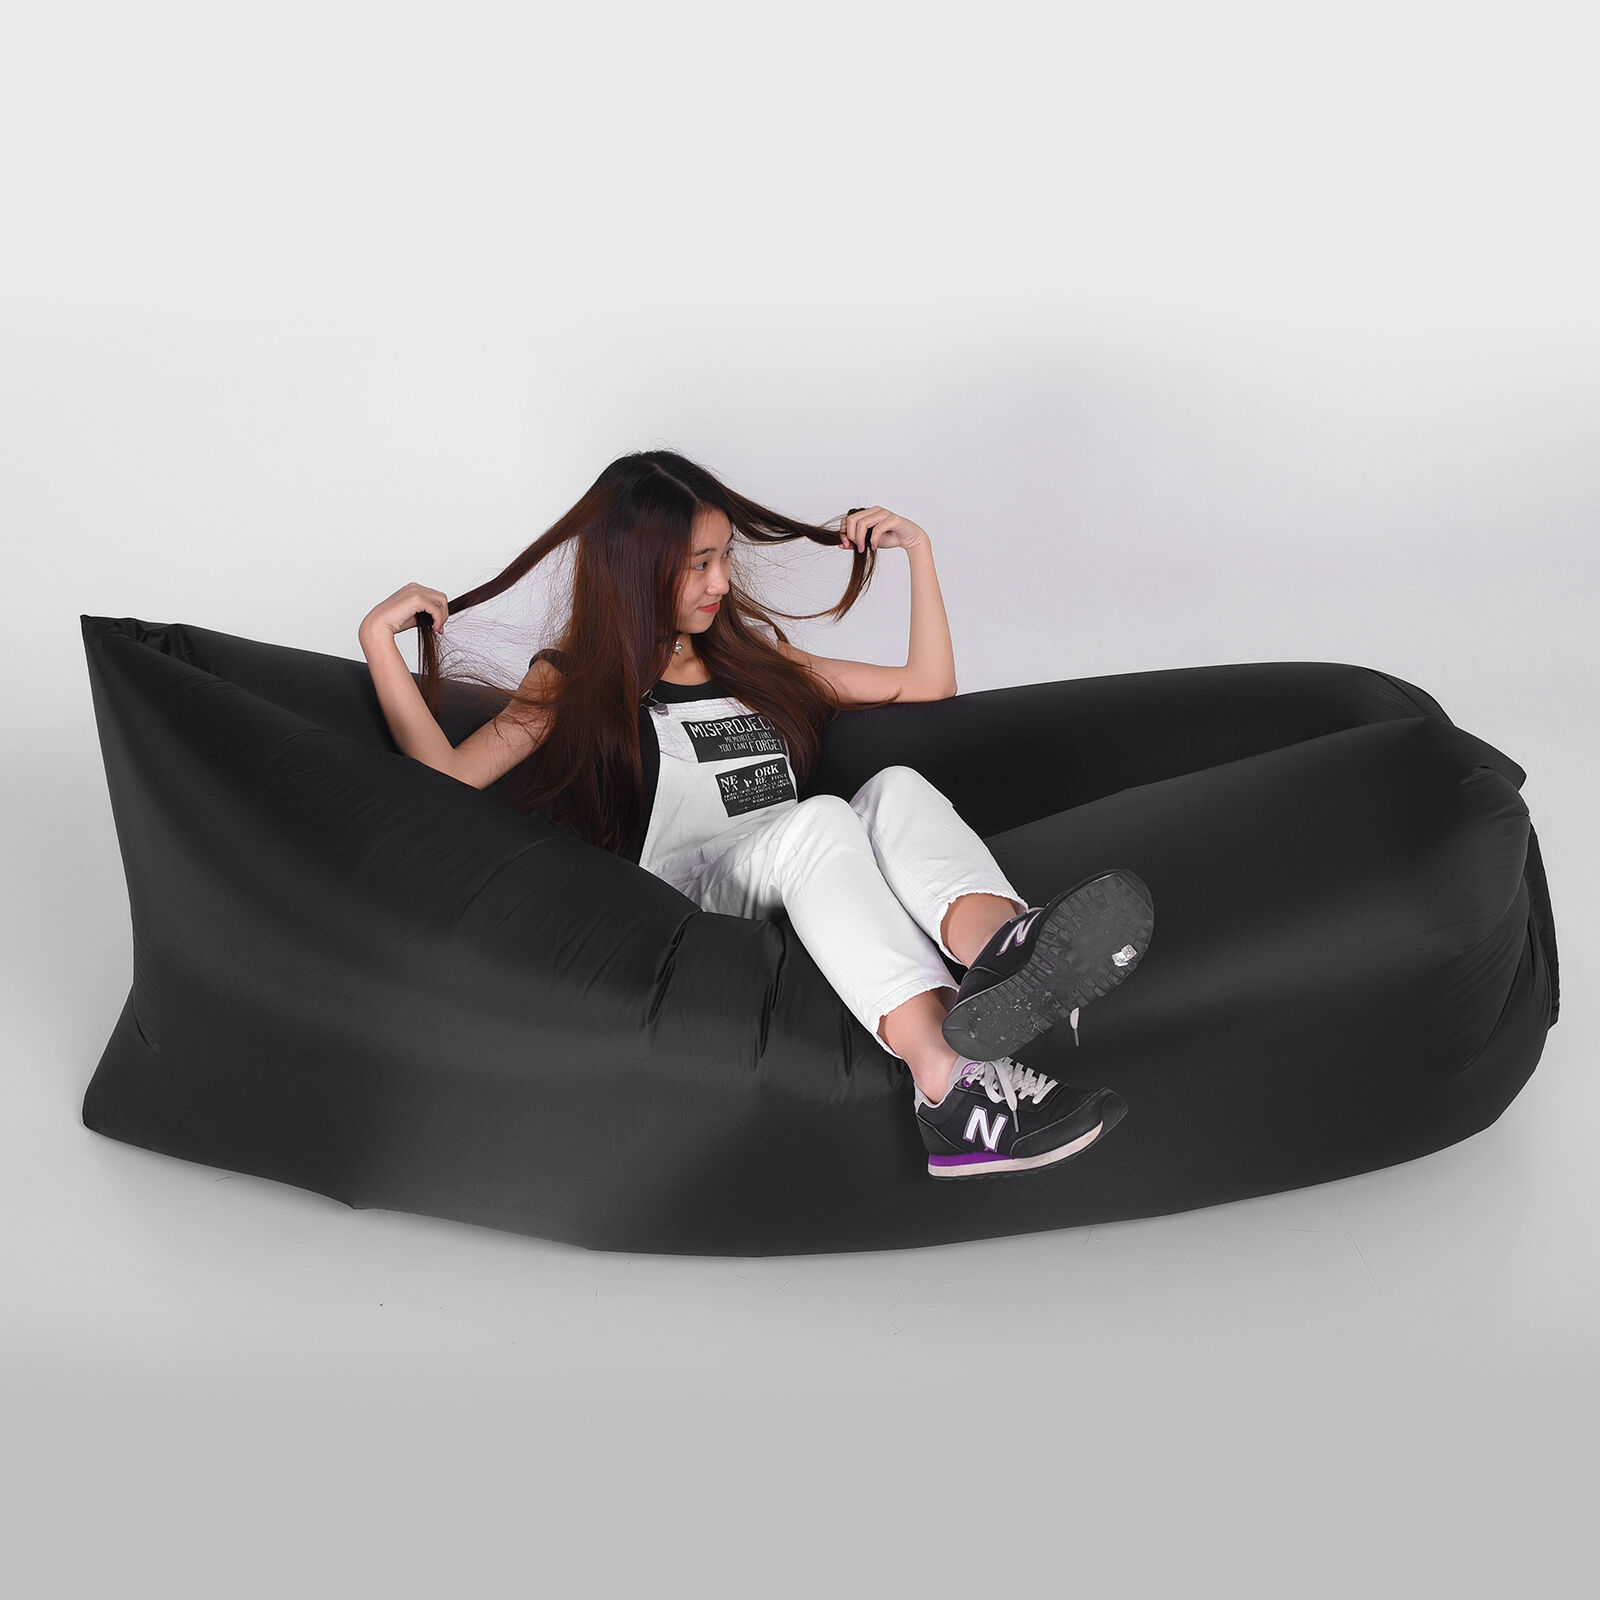 Sofa Fast Inflatable Air Lazy Sleeping Bag Camping Lay Bed Storage Bag